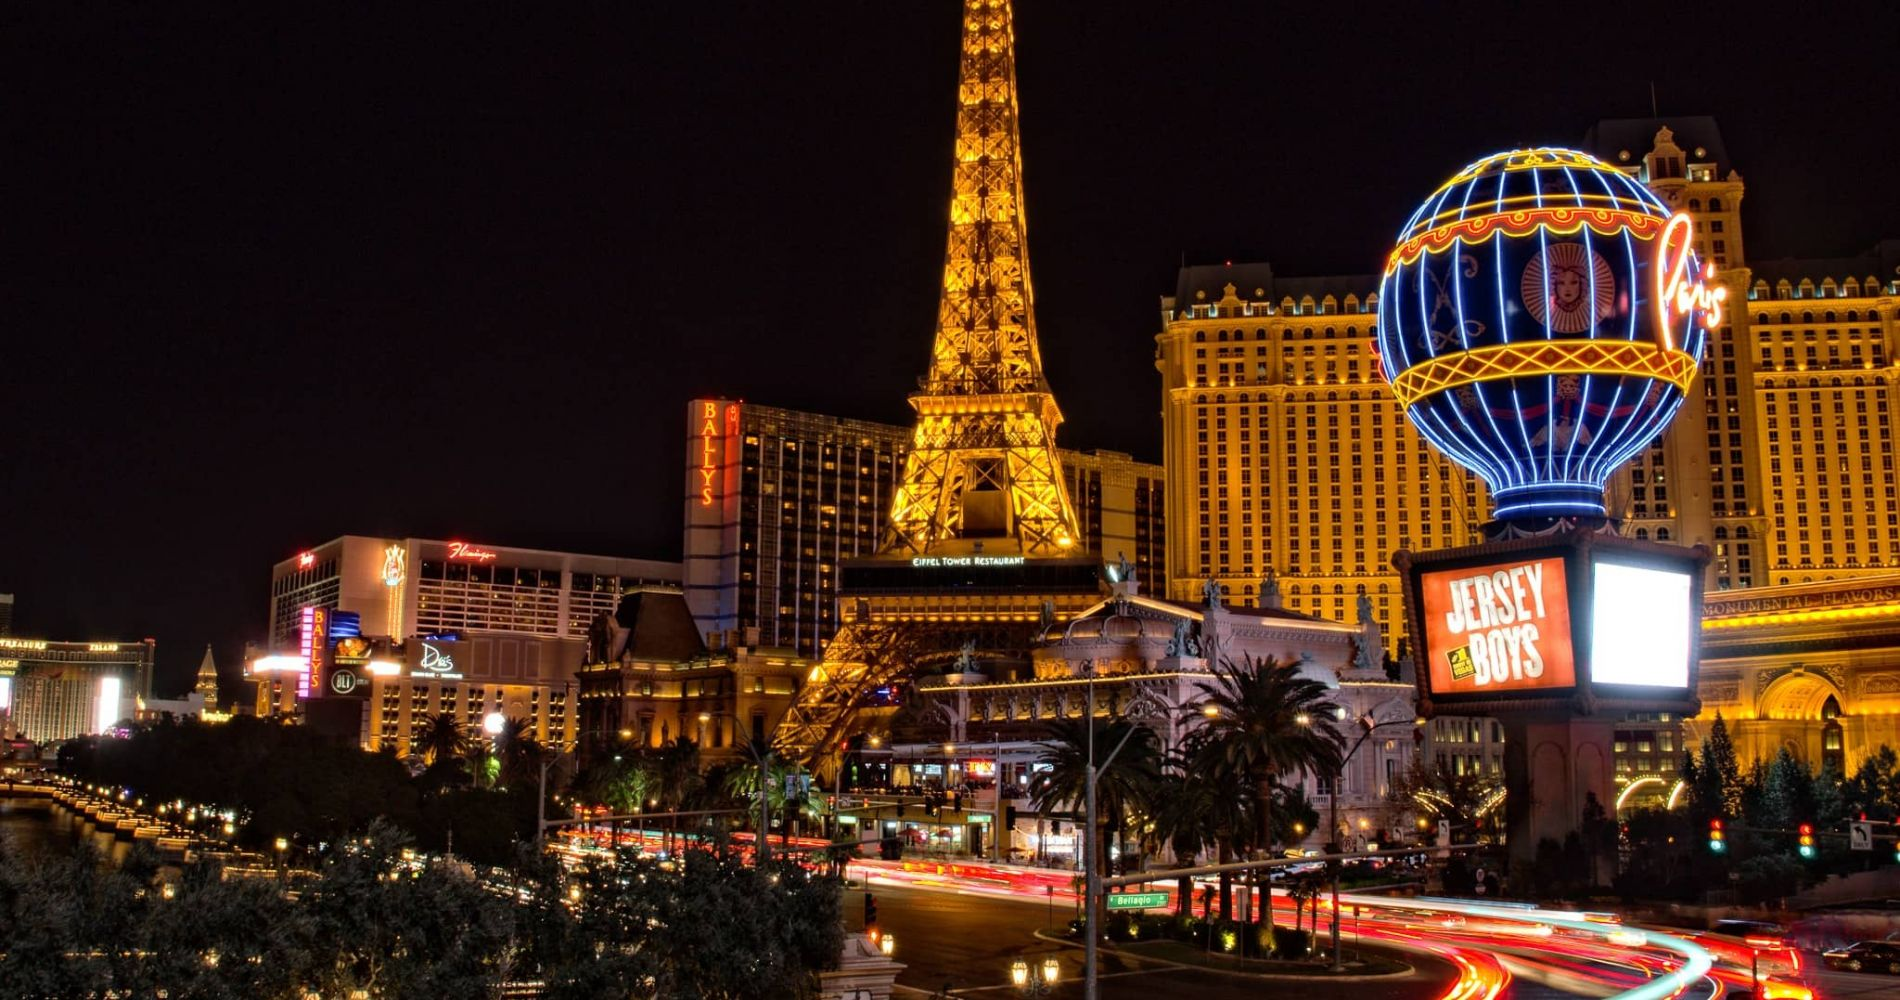 Ticket to Eiffel Tower LasVegas and other attractions